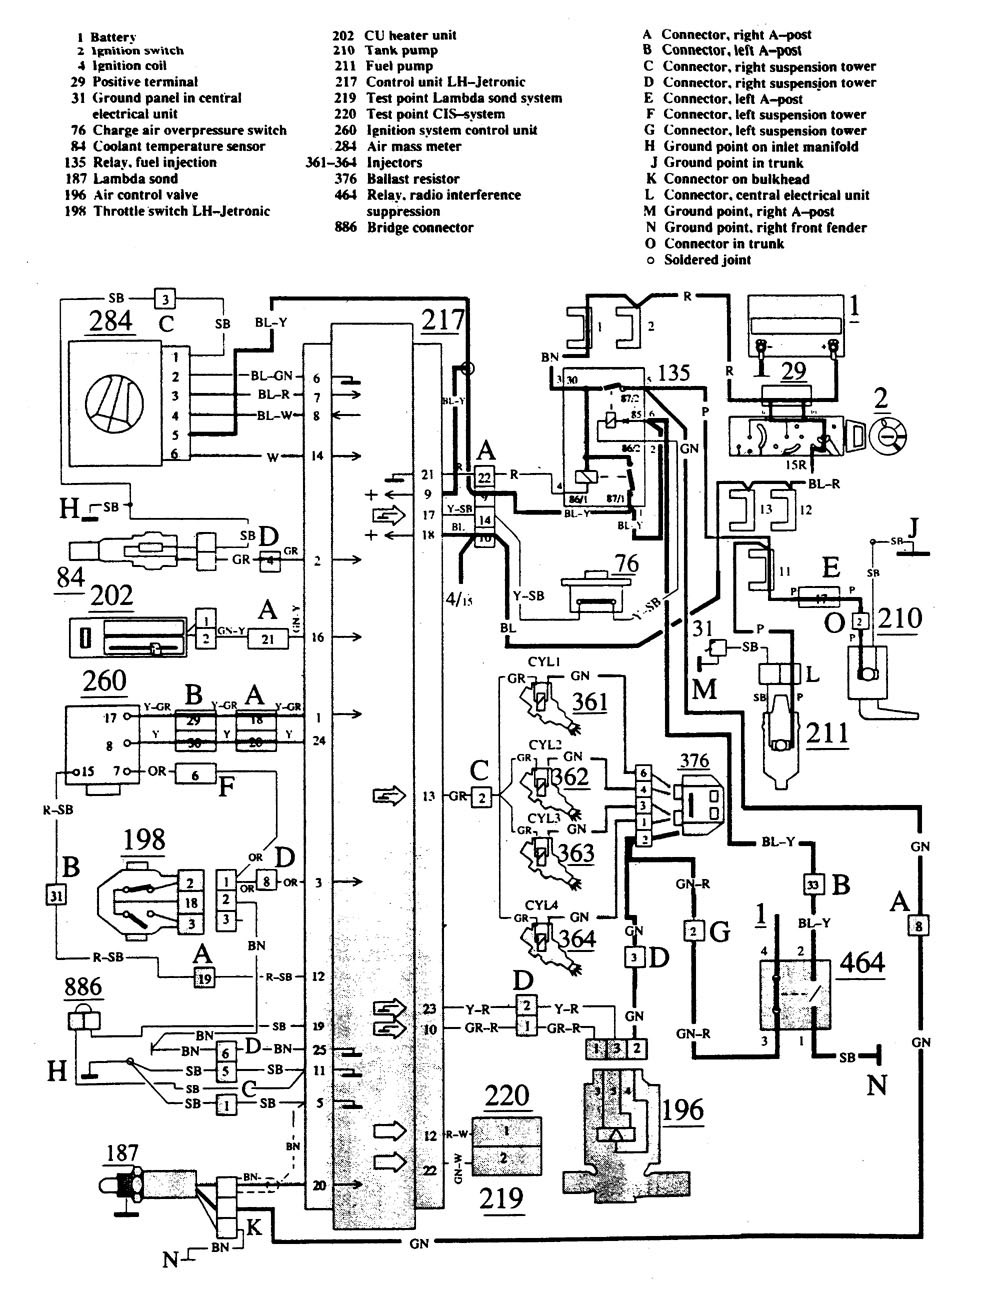 Volvo 740 Wiring Harness Free Diagram For You Ignition Switch Electrical Diagrams 1987 Turbo Auto Vnl Truck